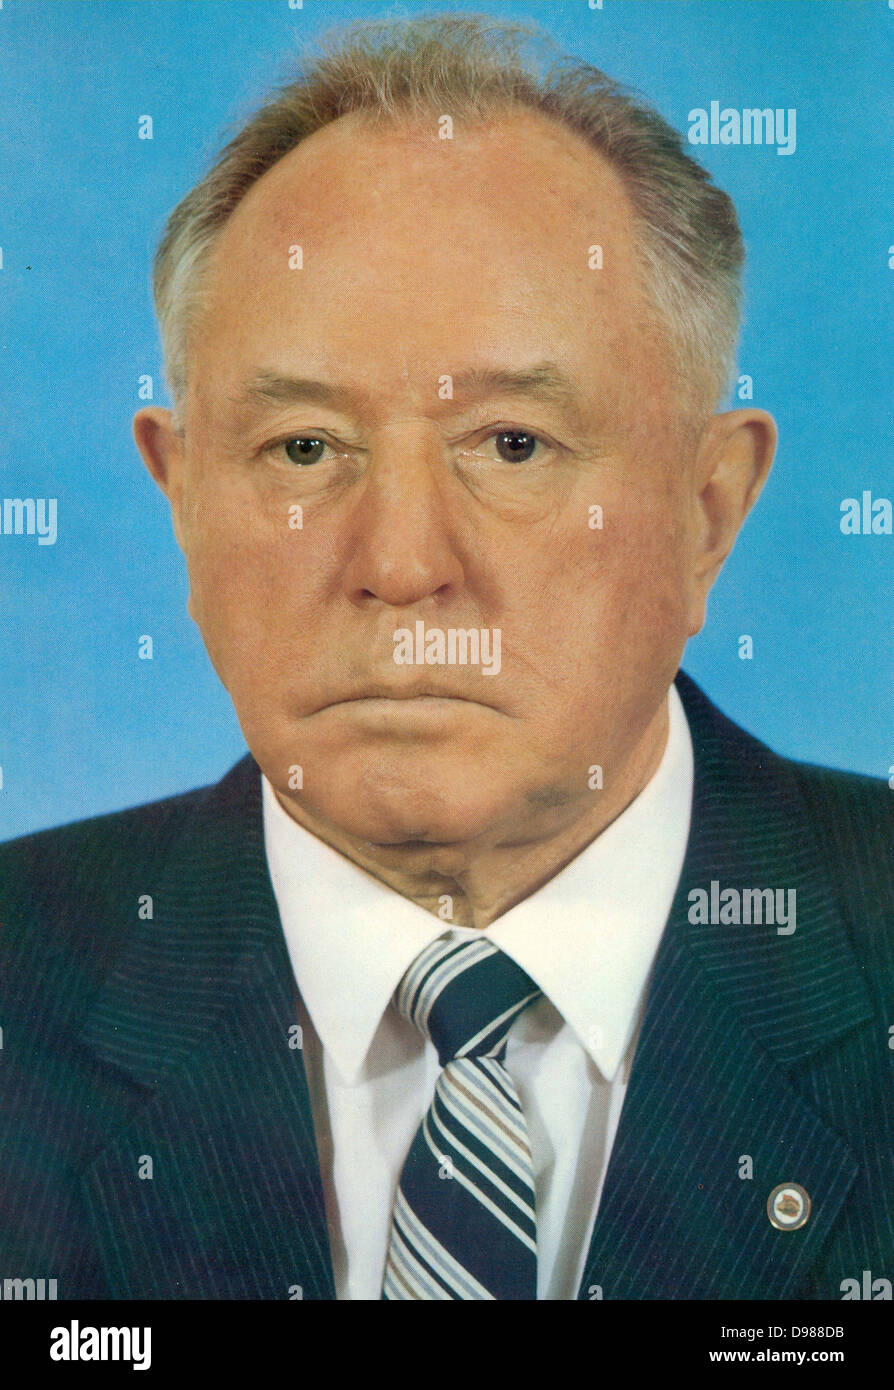 Erich Mielke (1907-2000), German Communist politician. Minister of State Security in the German Democratic Republic - Stock Image